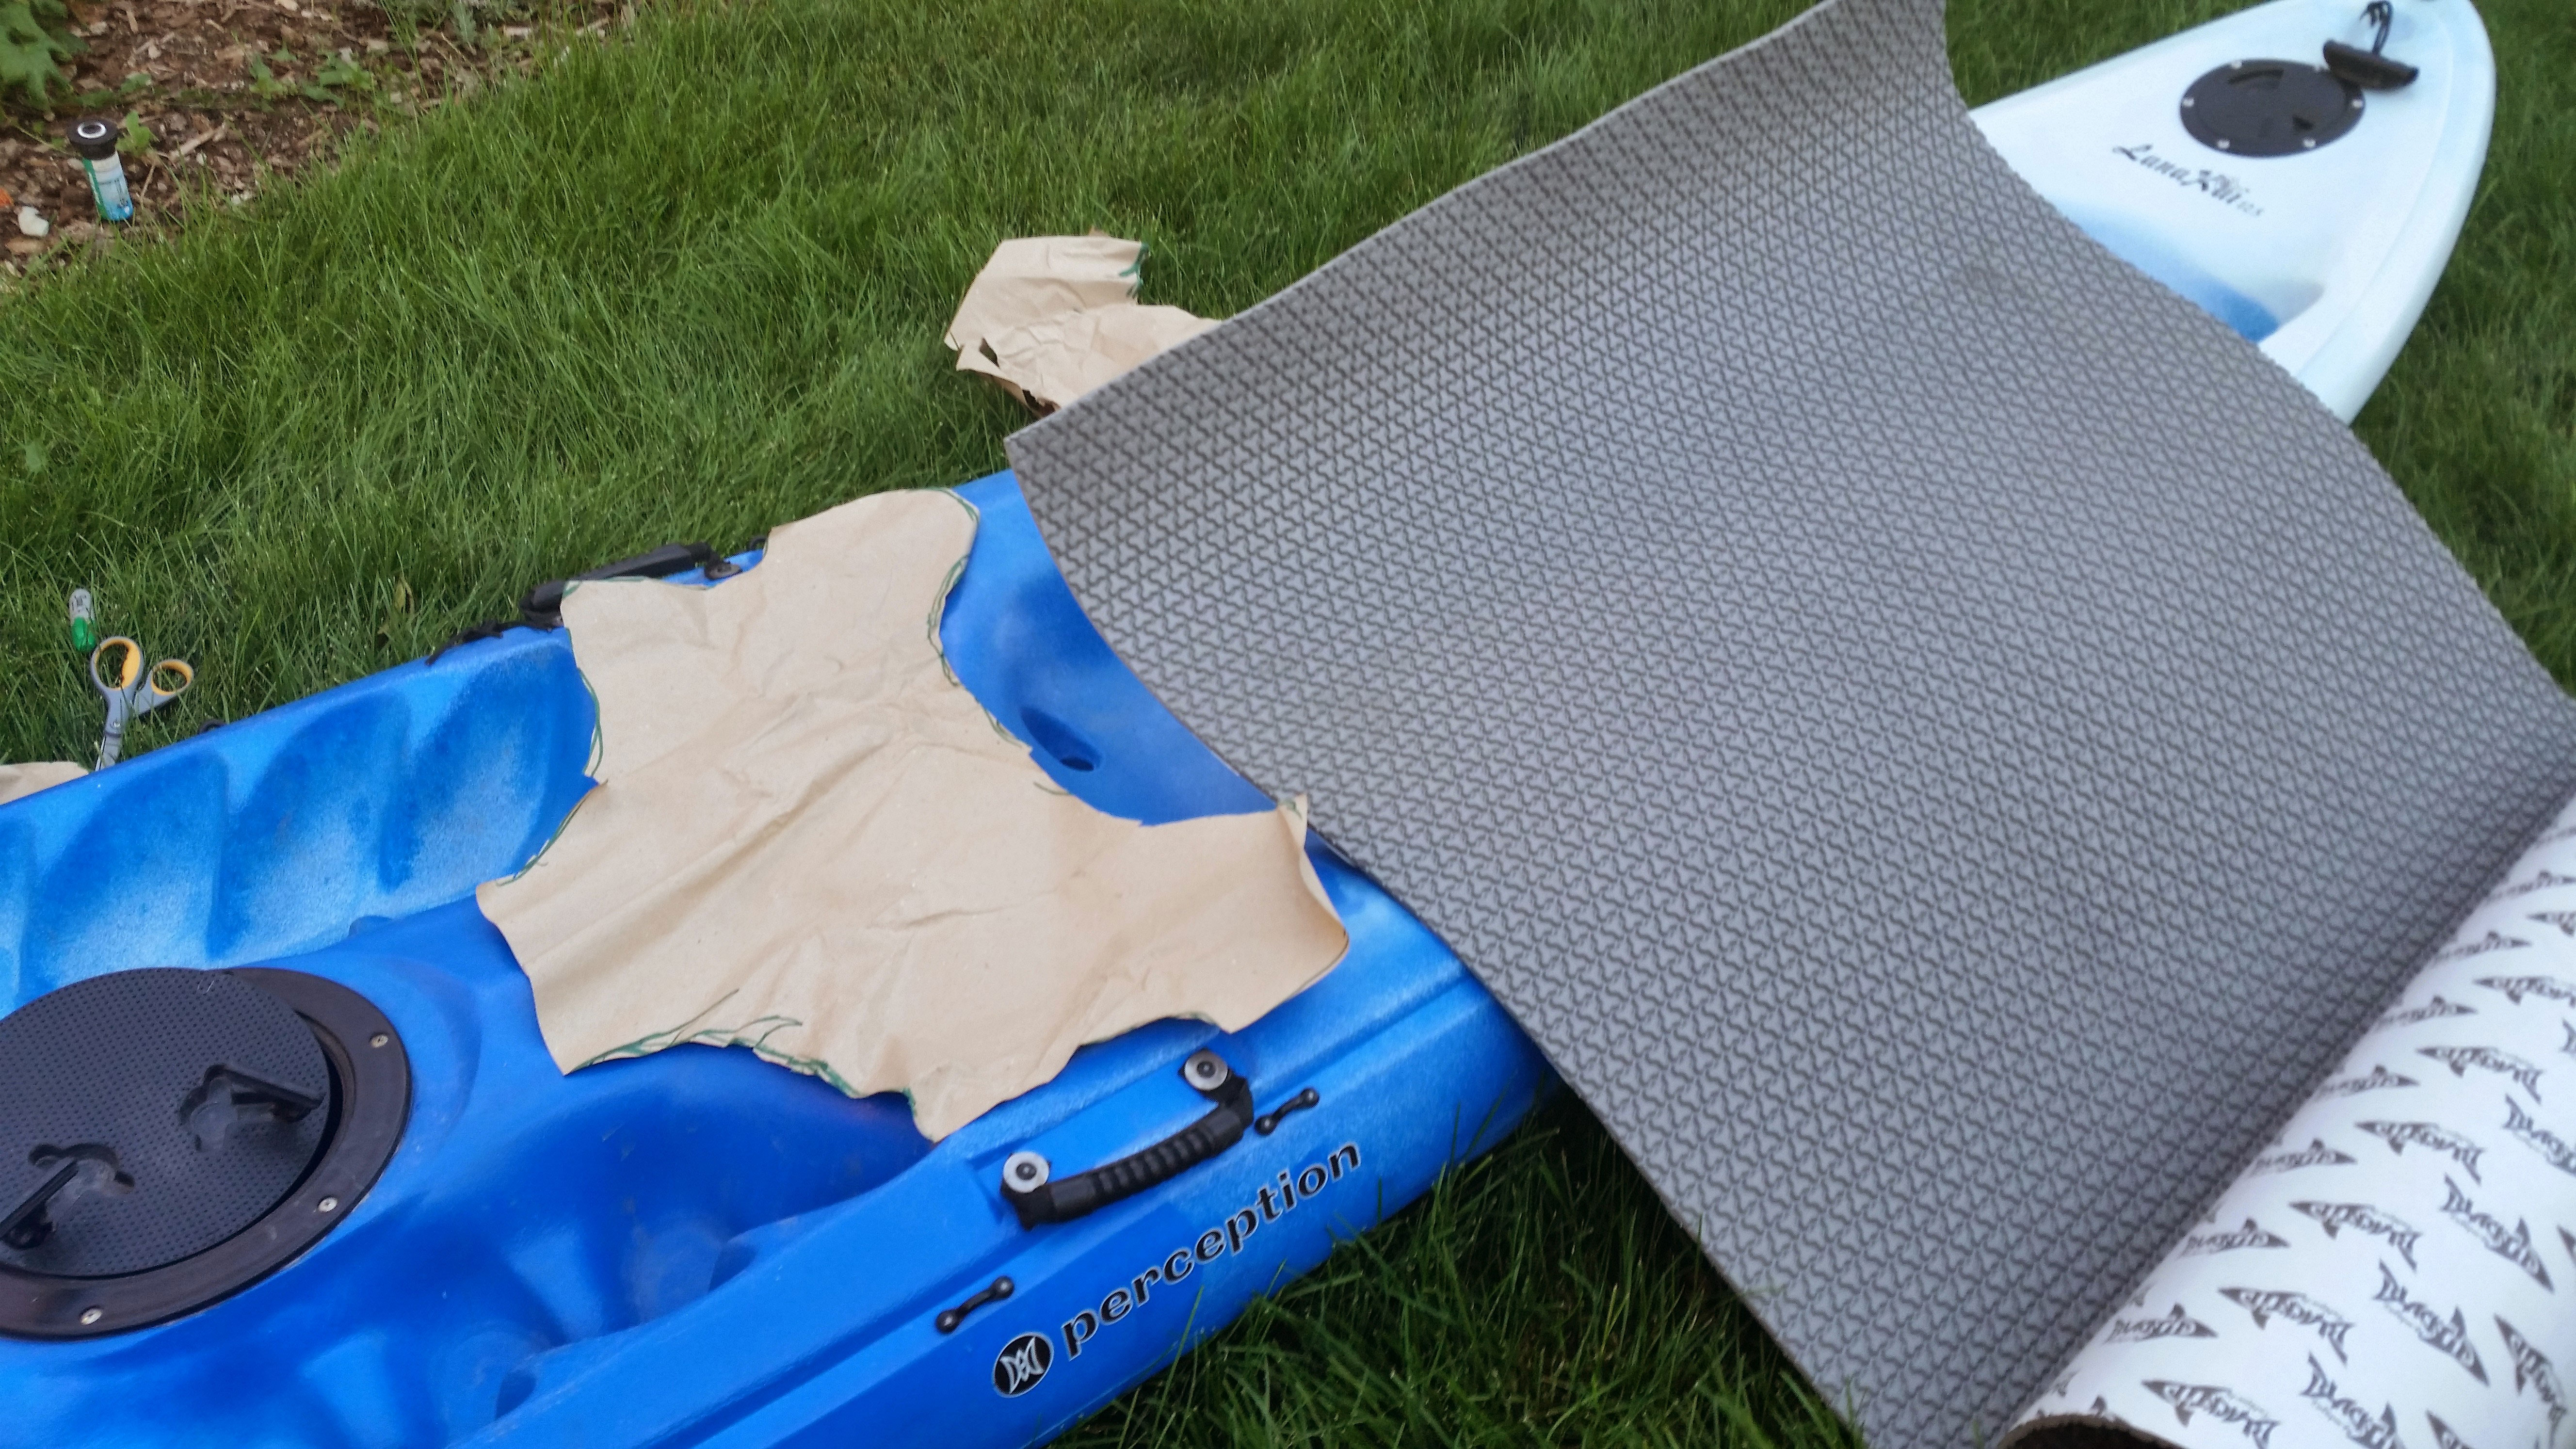 How to install a traction mat on a kayak